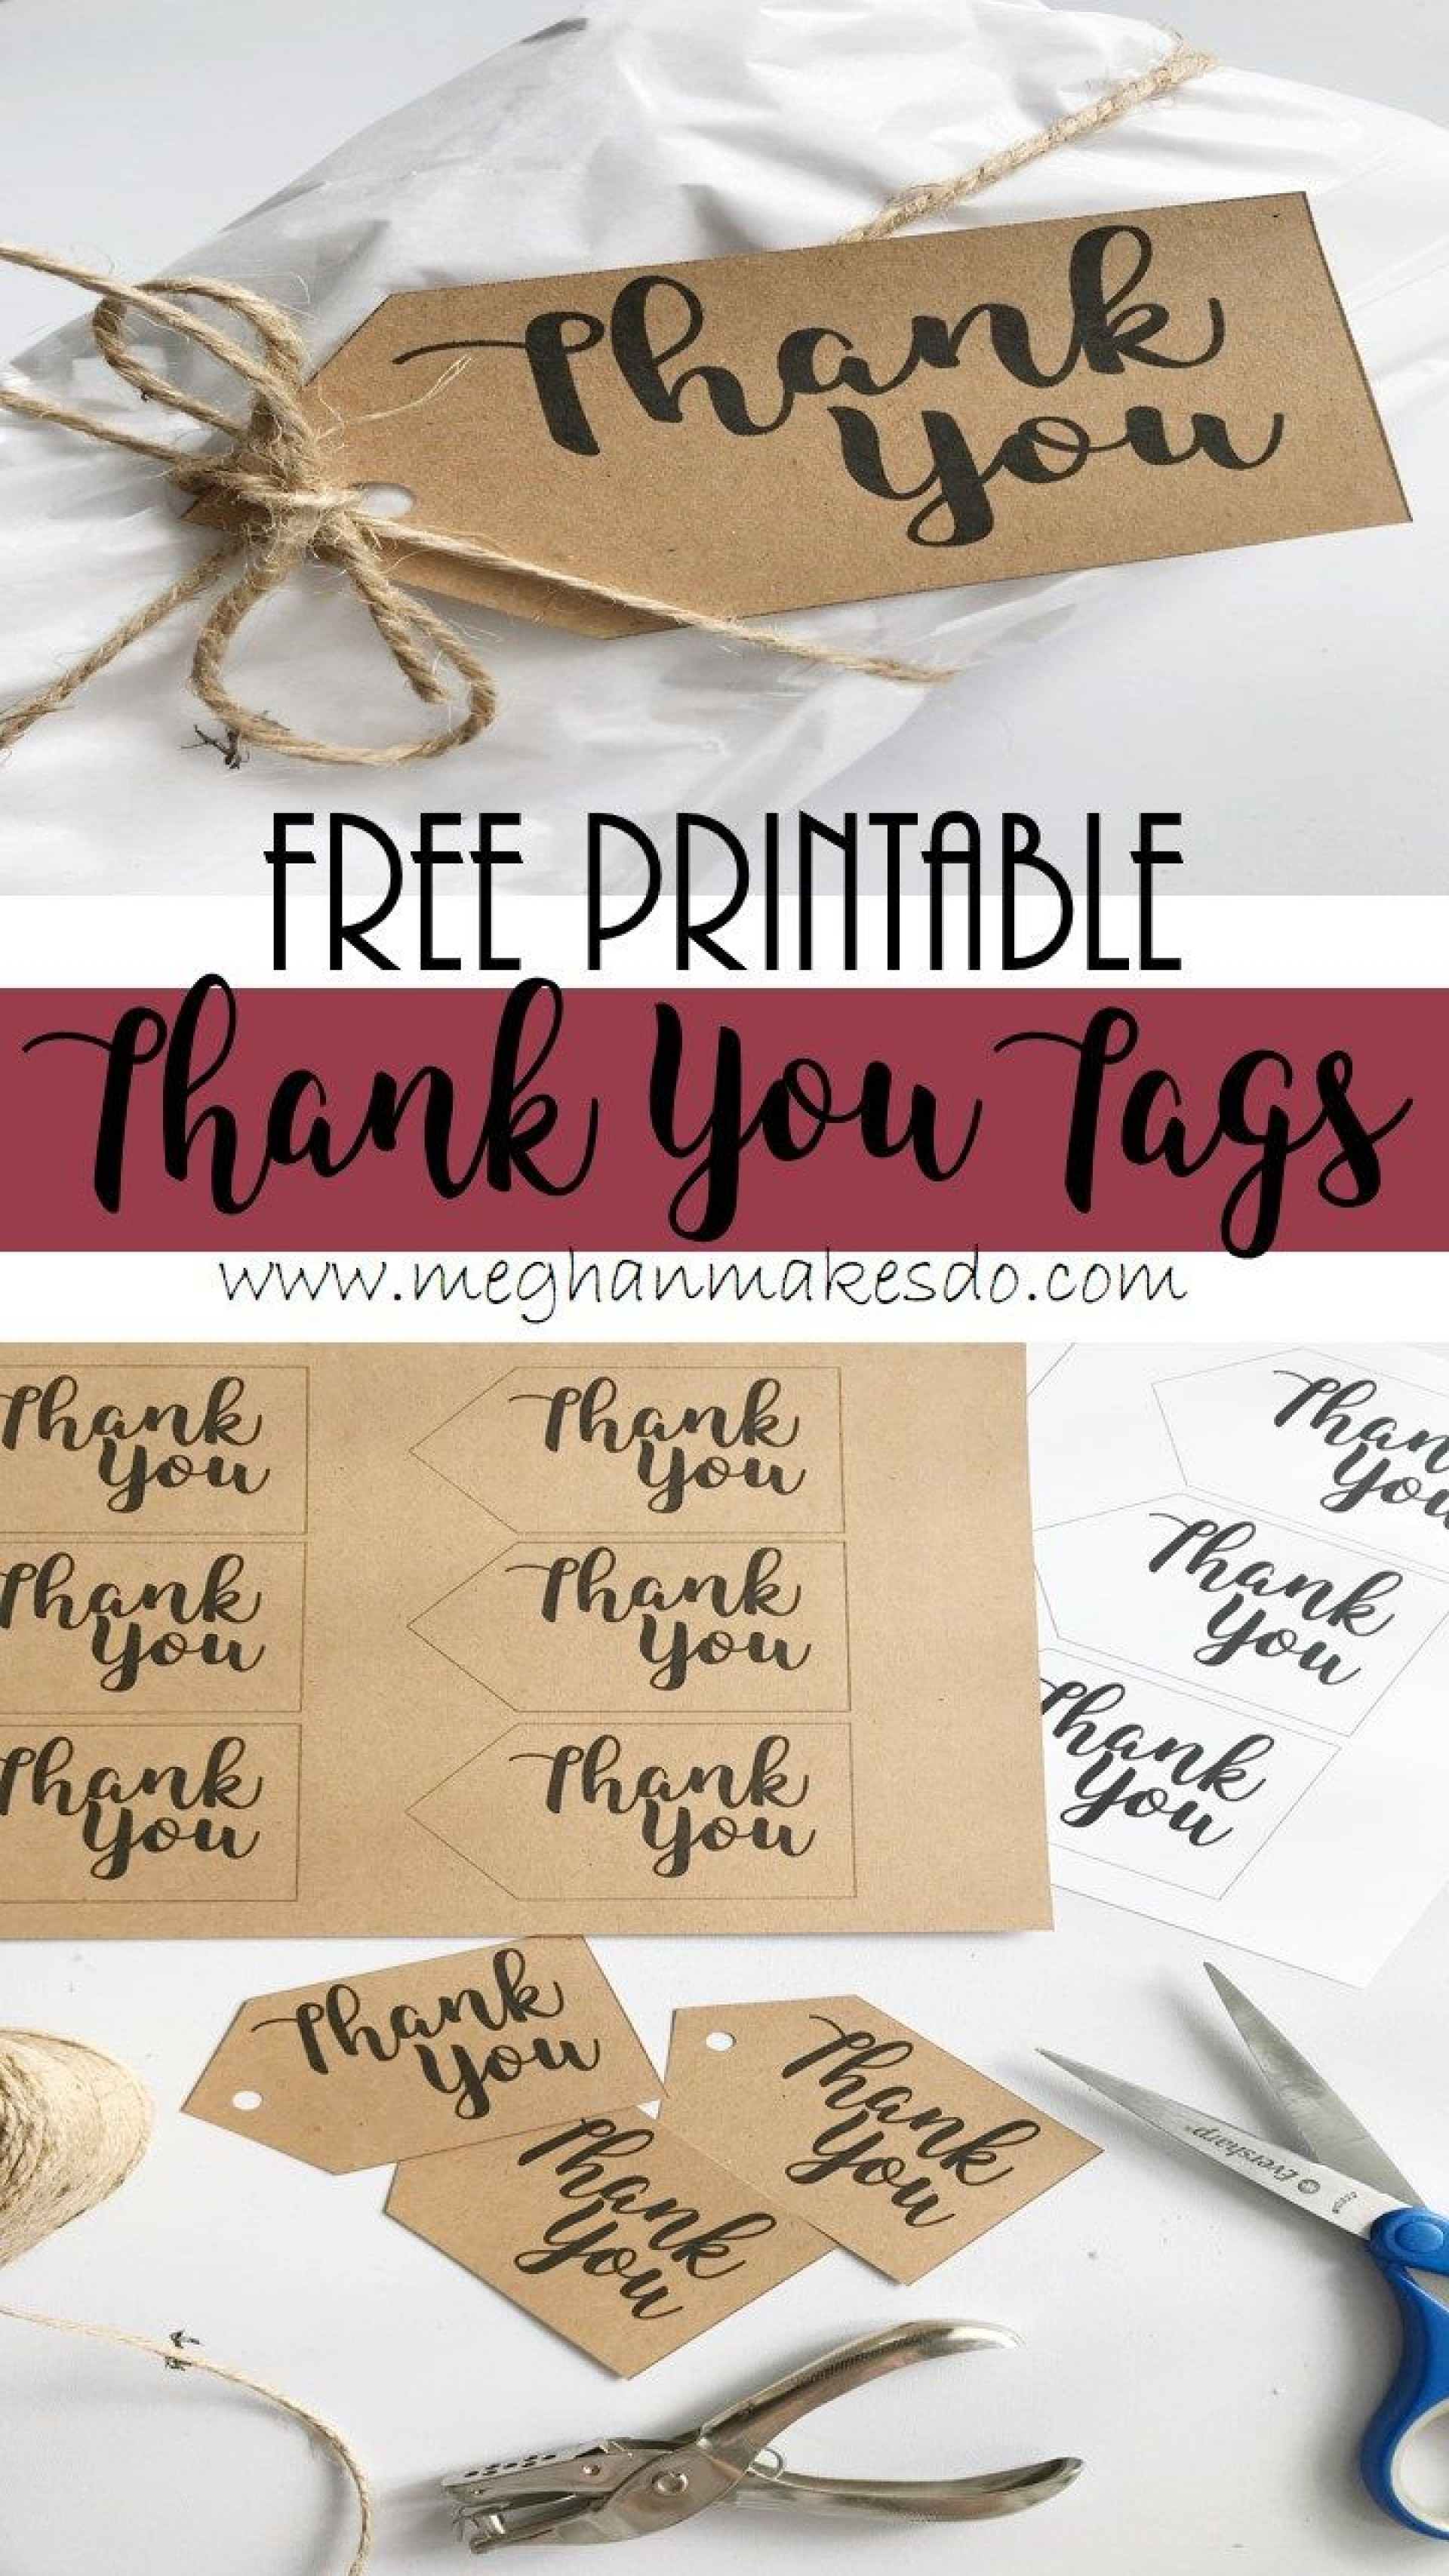 011 Fascinating Free Printable Thank You Gift Tag Template Sample  Templates1920